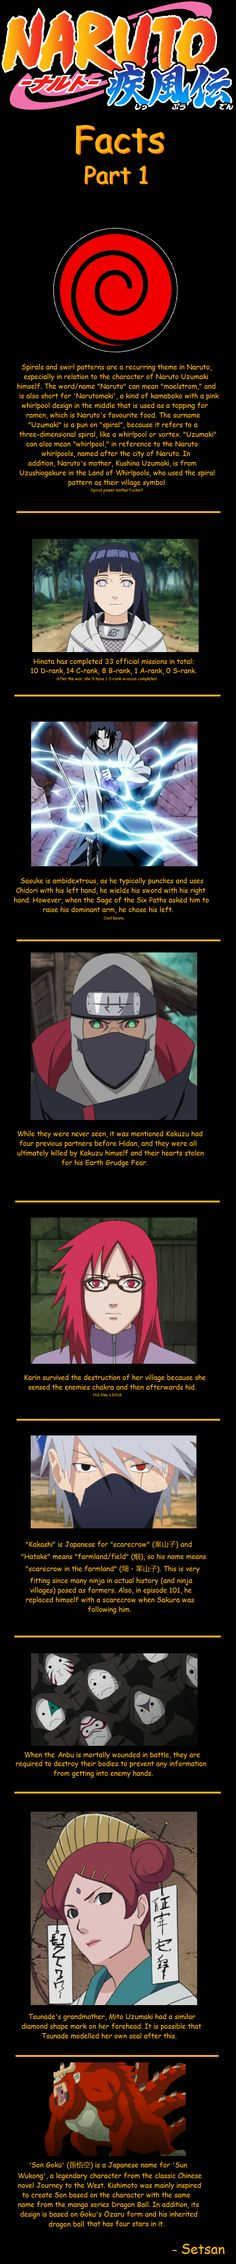 Naruto Facts Part 1. OMG but seriously, the thing under the fact about Karin...I could breathe.